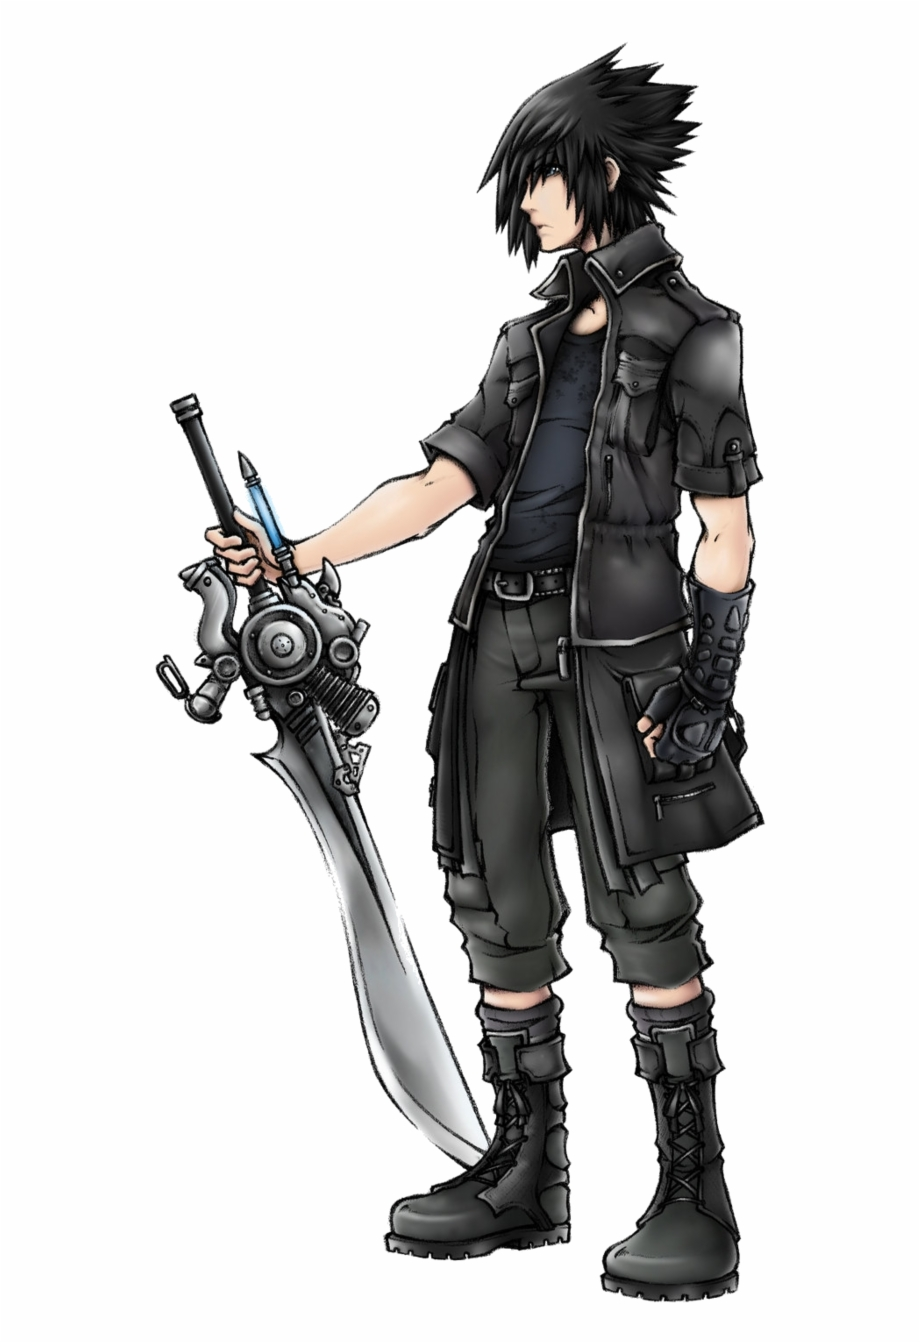 Noctis Png.